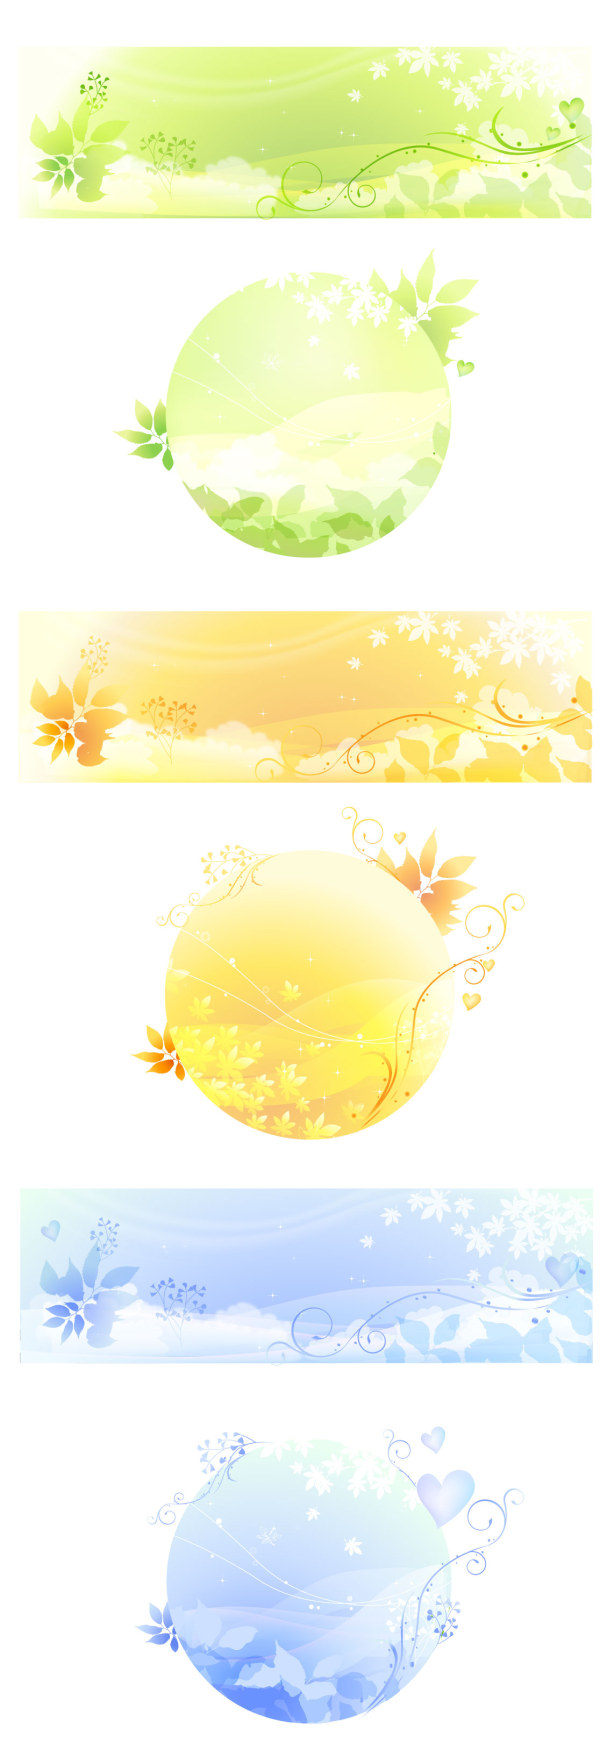 Rattan spring, autumn leaves, background vector material